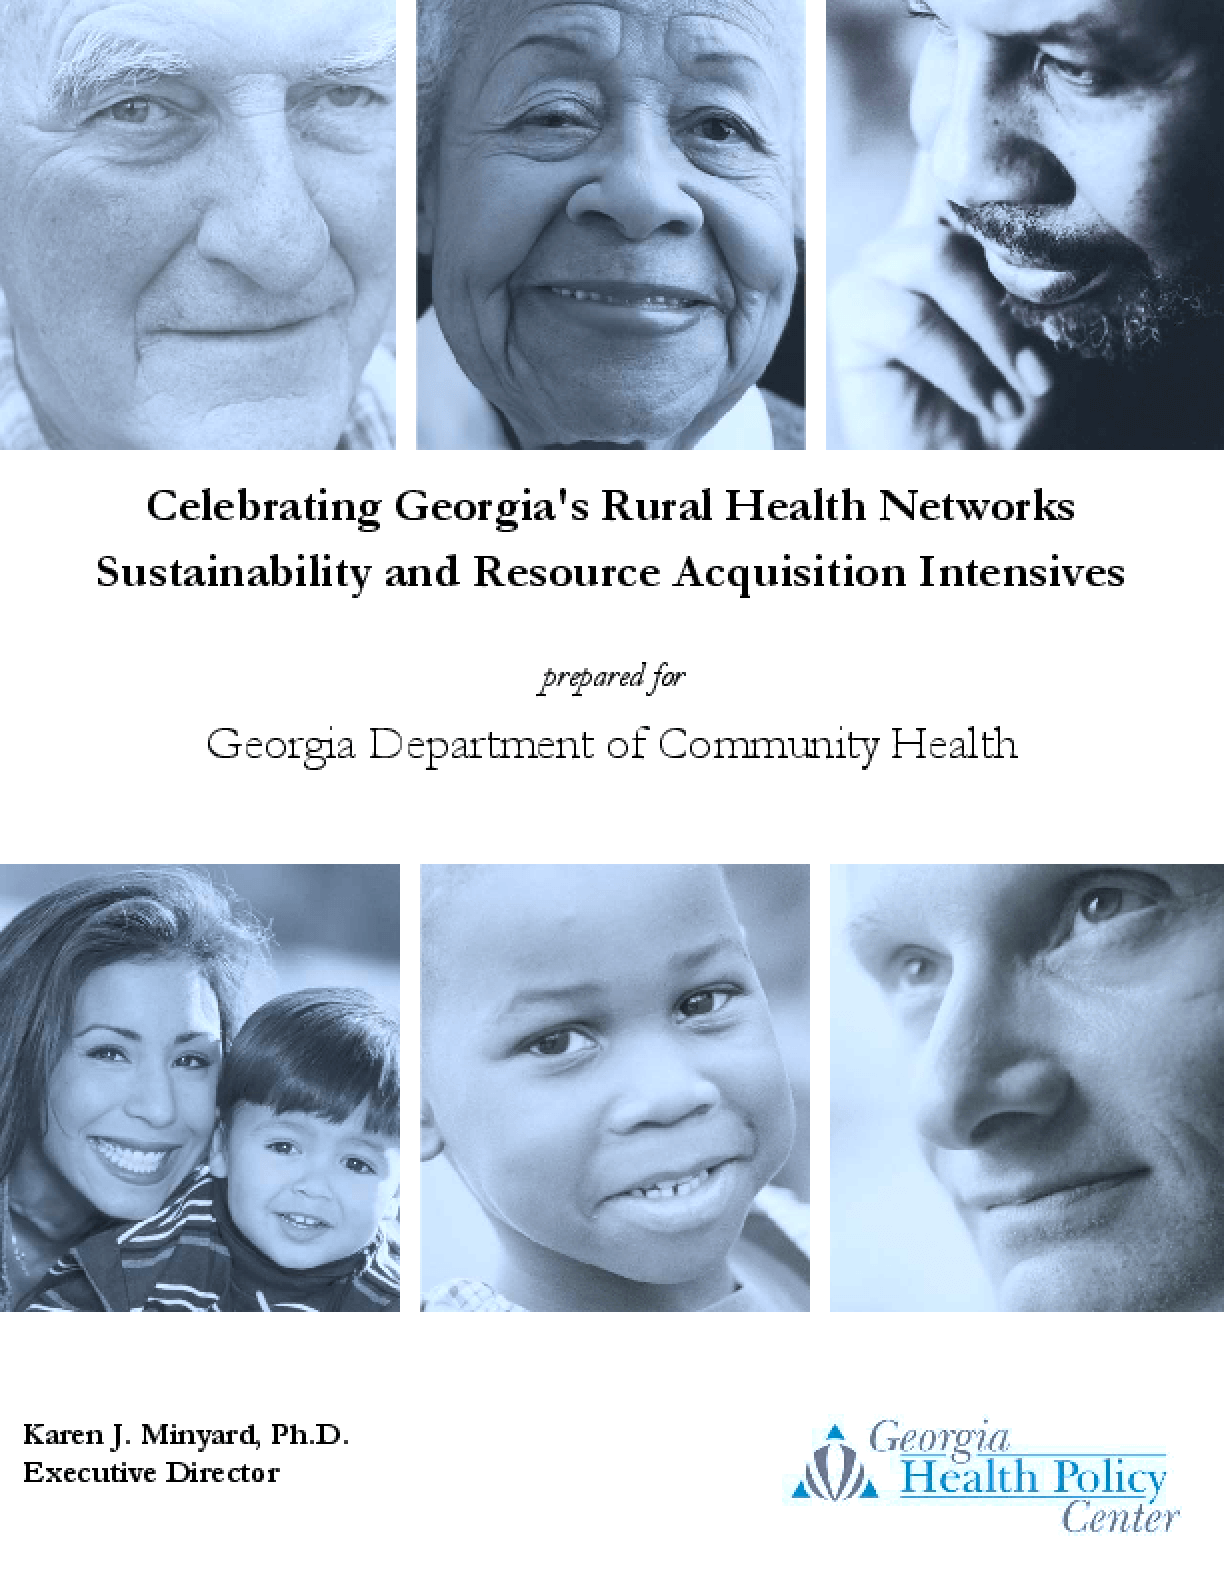 Celebrating Georgia's Rural Health Networks Sustainability and Resource Acquisition Intensives